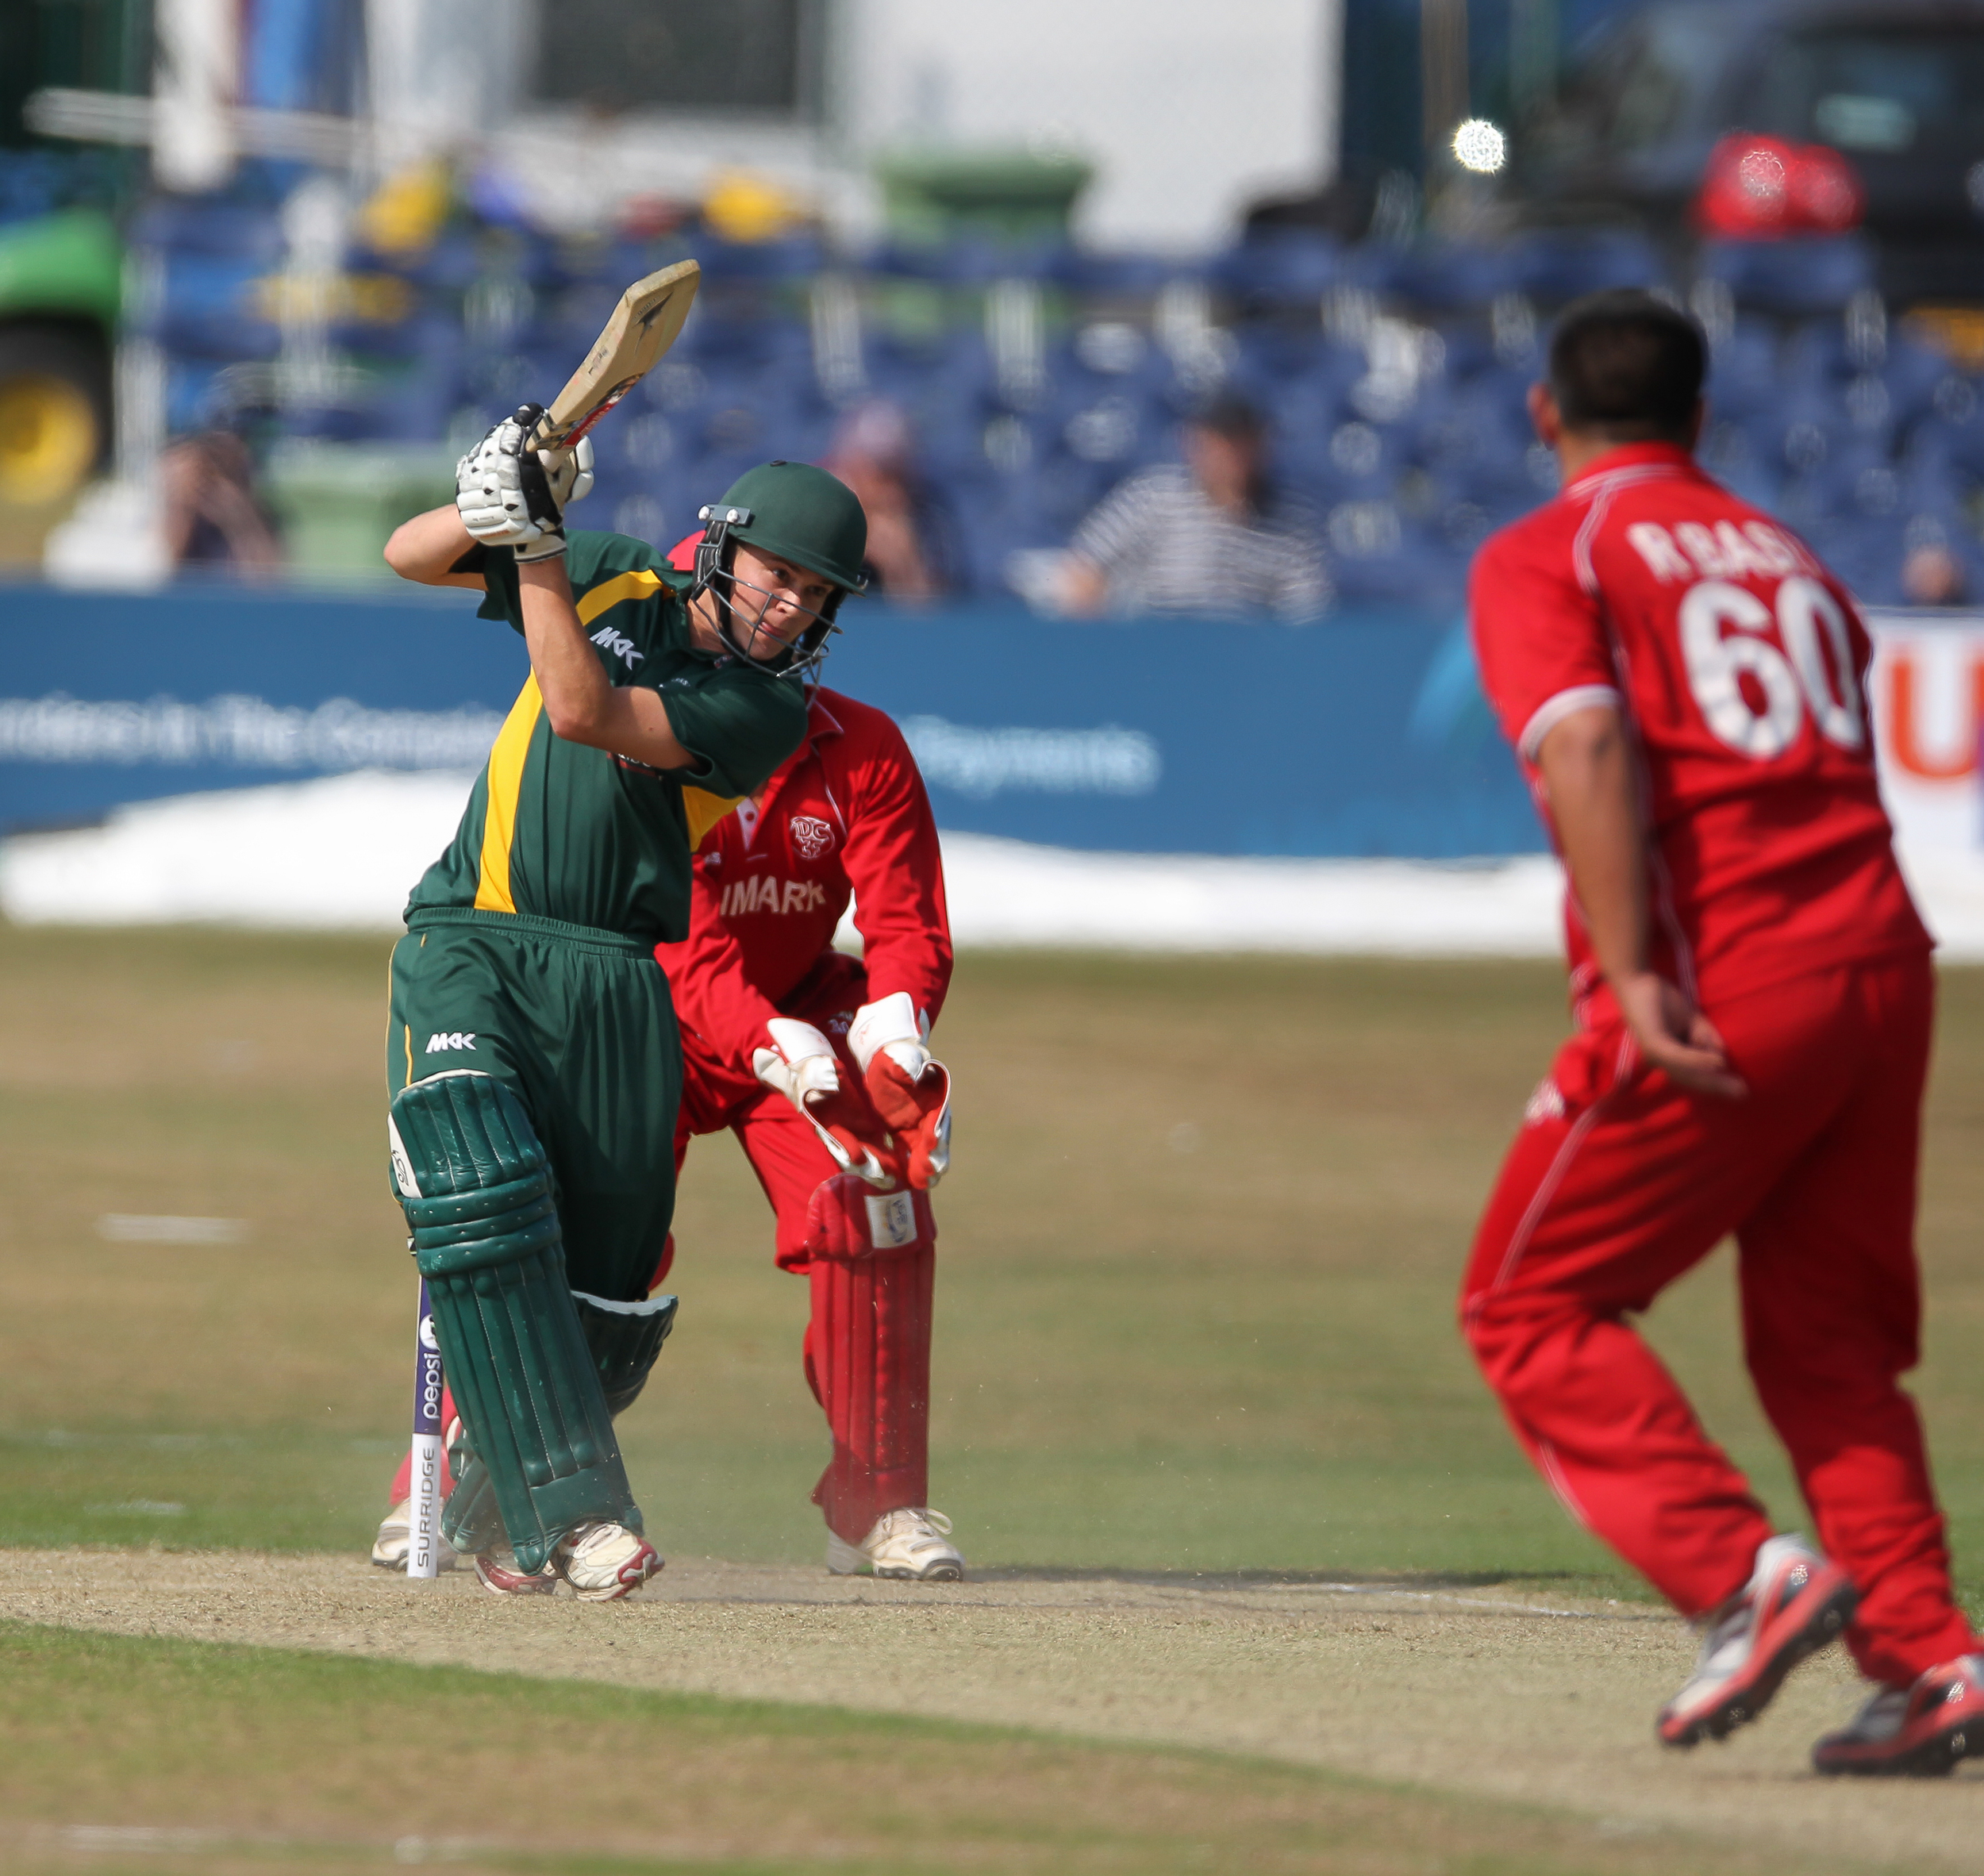 Guernsey v Denmark 2013... Venue The County Ground Hove... Date: 13th July... Result: Denmark by 113 runs.